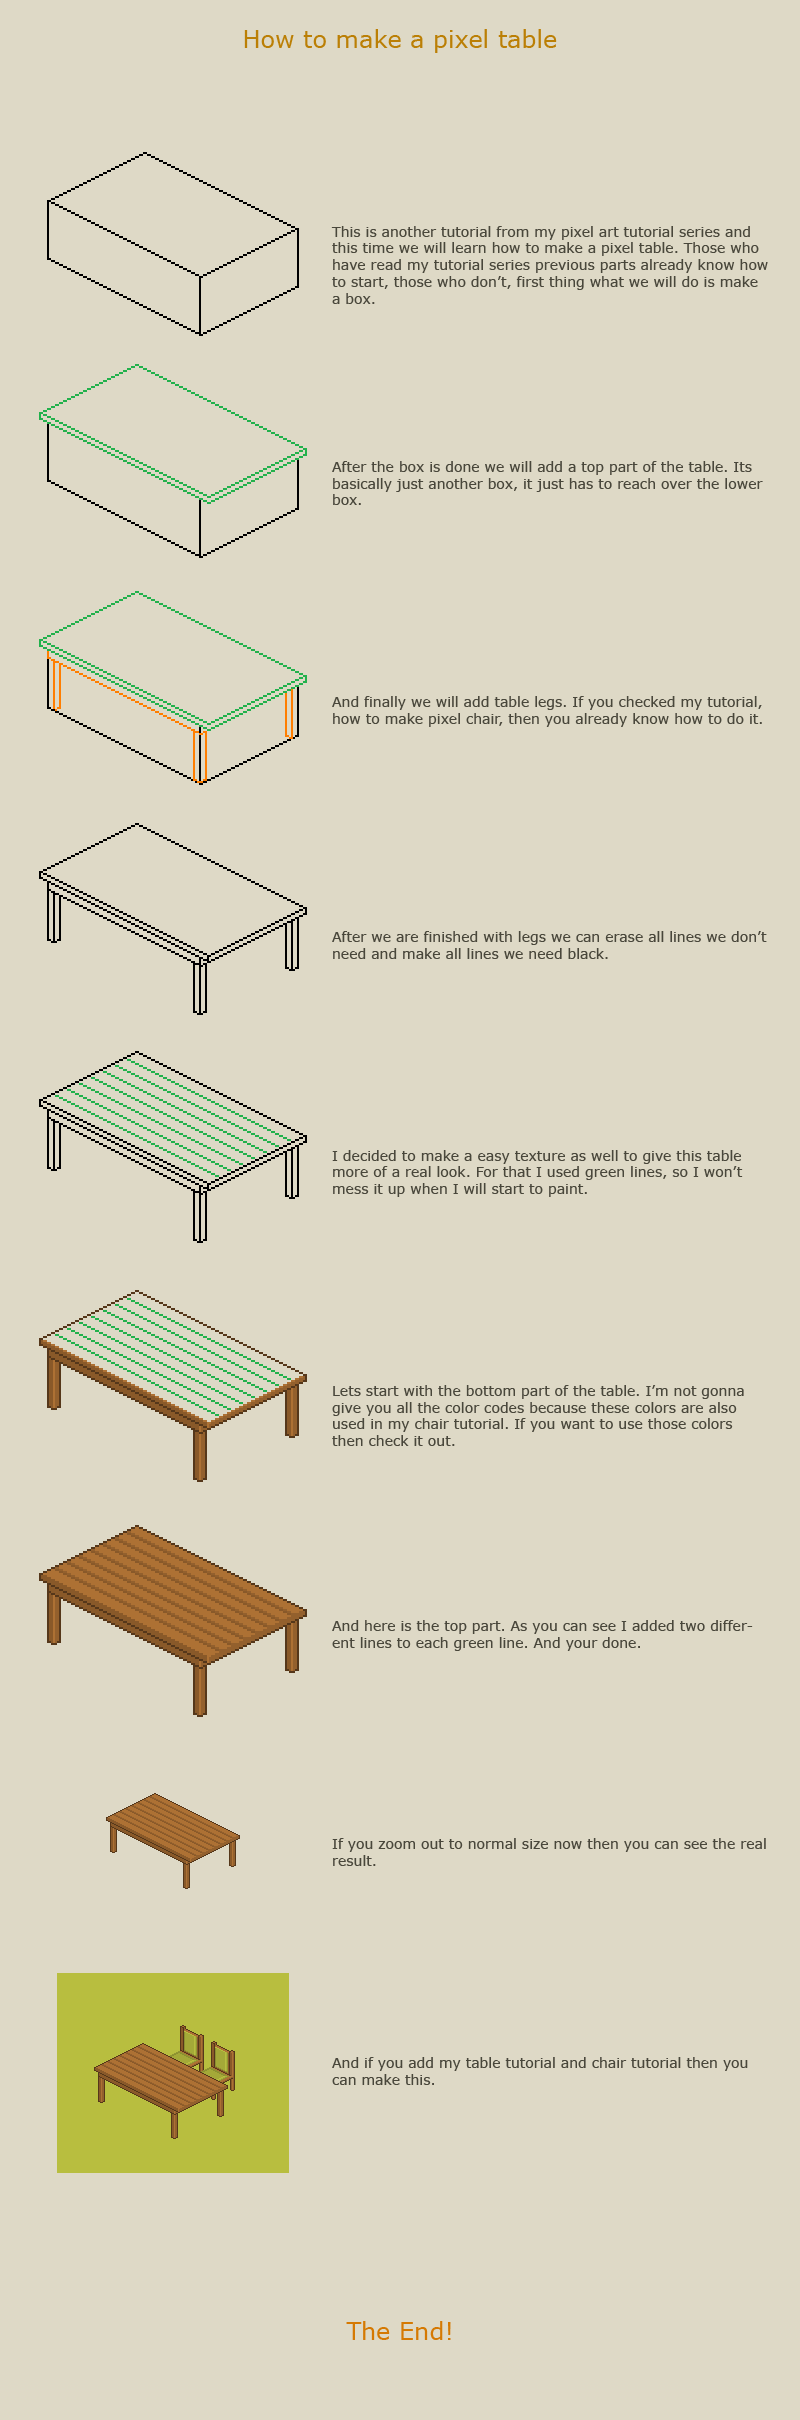 How to make a pixel table